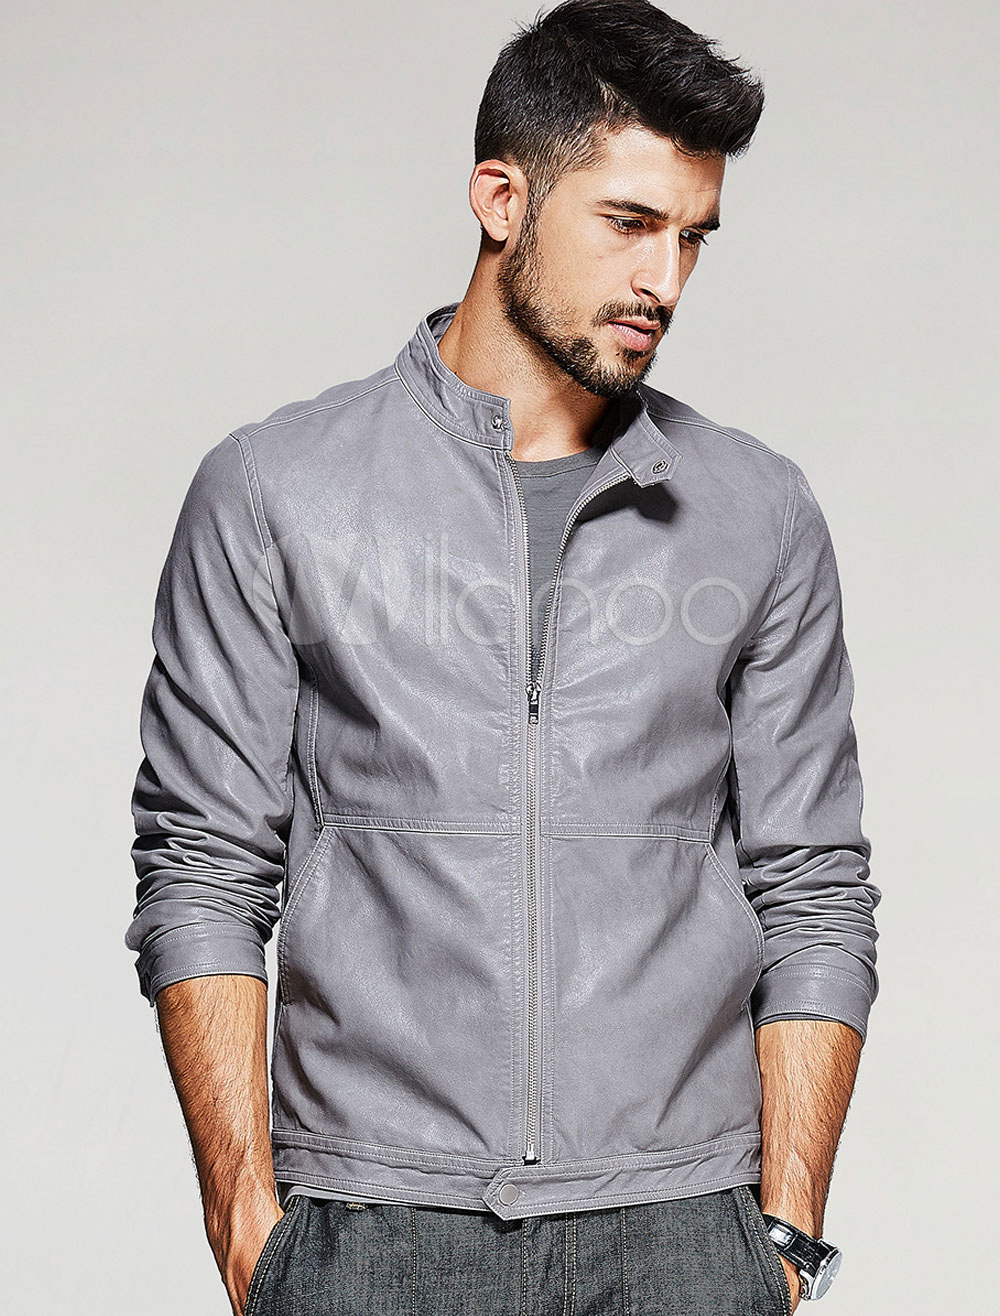 Grey Leather Jackets Men's Stand Collar Long Sleeve Slim Fit Short Jacket thumbnail